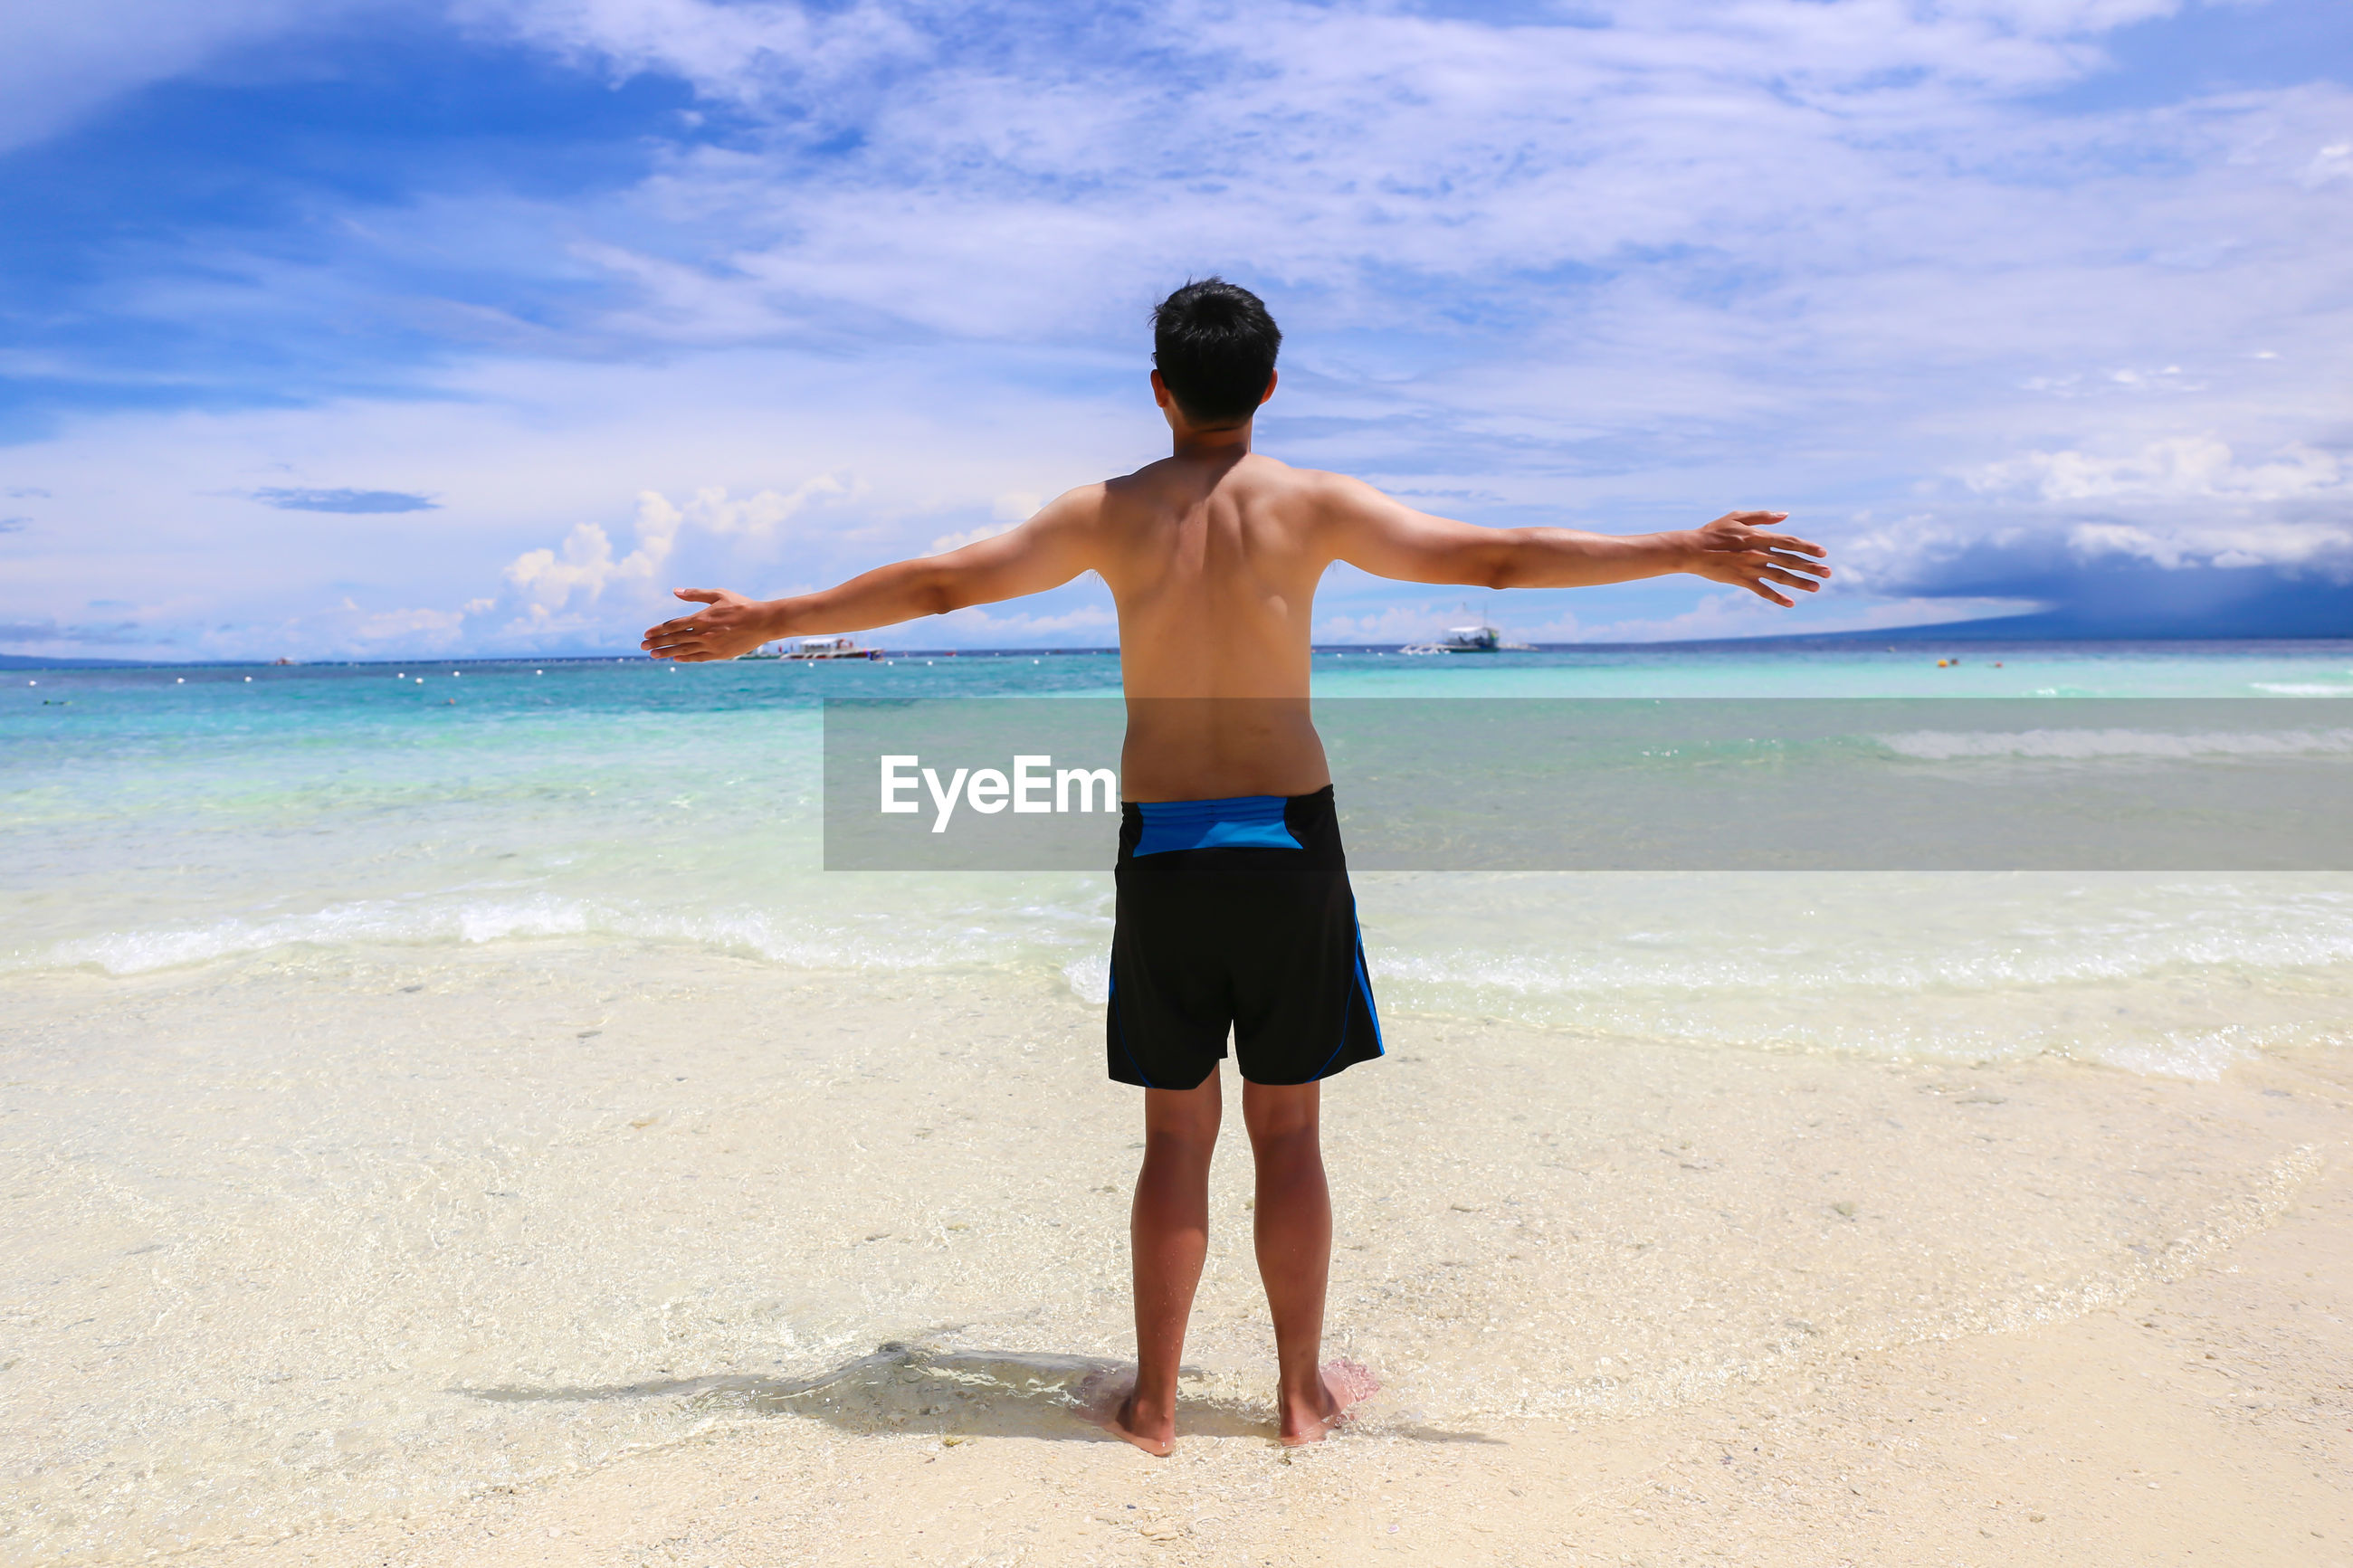 Rear view of shirtless man with arms outstretched standing at beach against sky